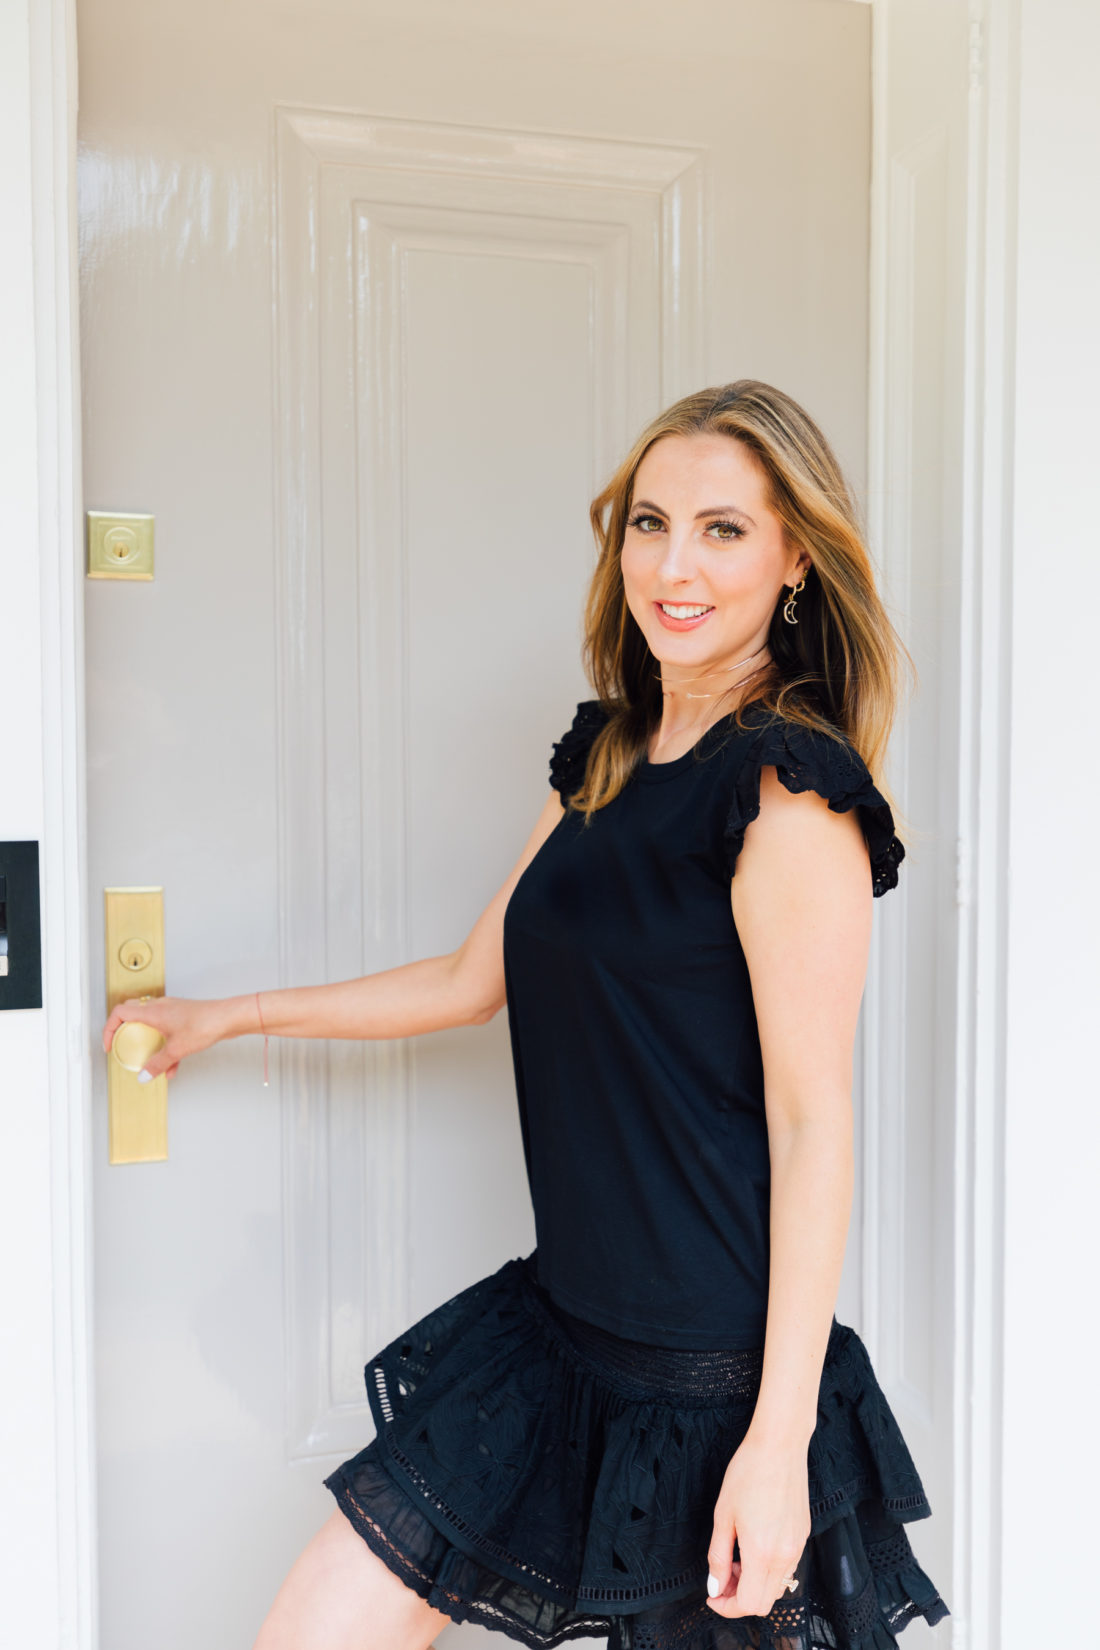 Eva Amurri Martino stands in the doorway of her newly renovated Connecticut home